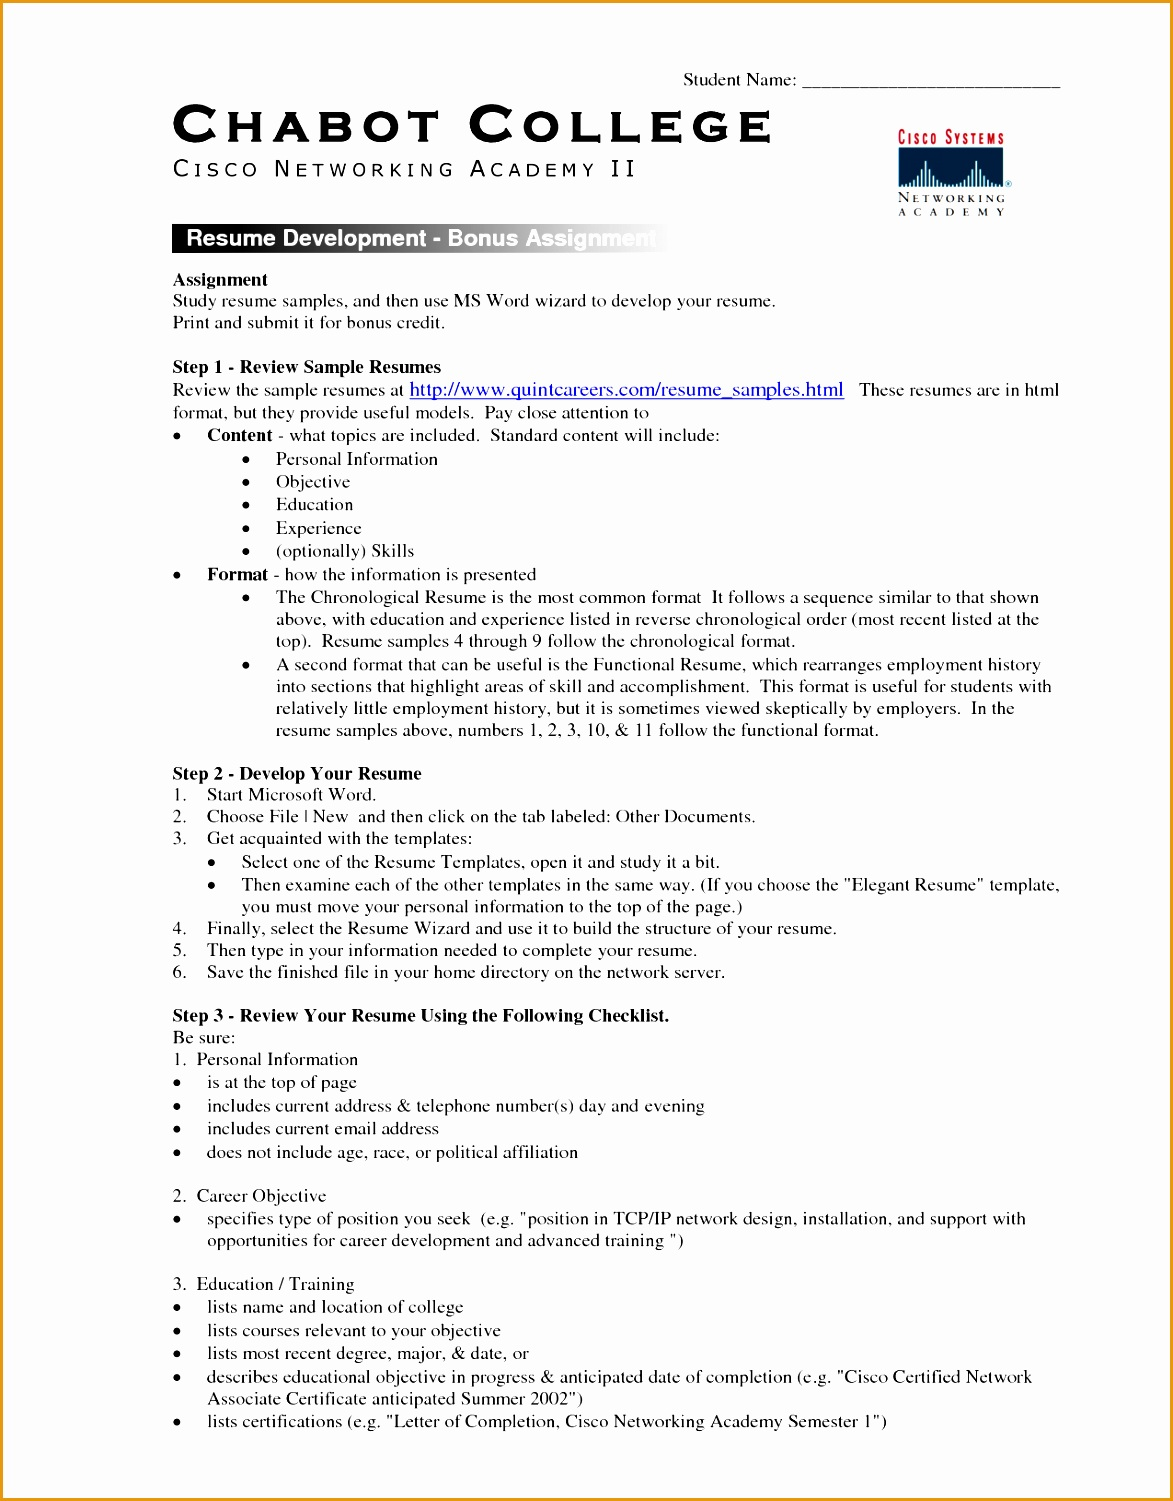 College Resume Template15011173